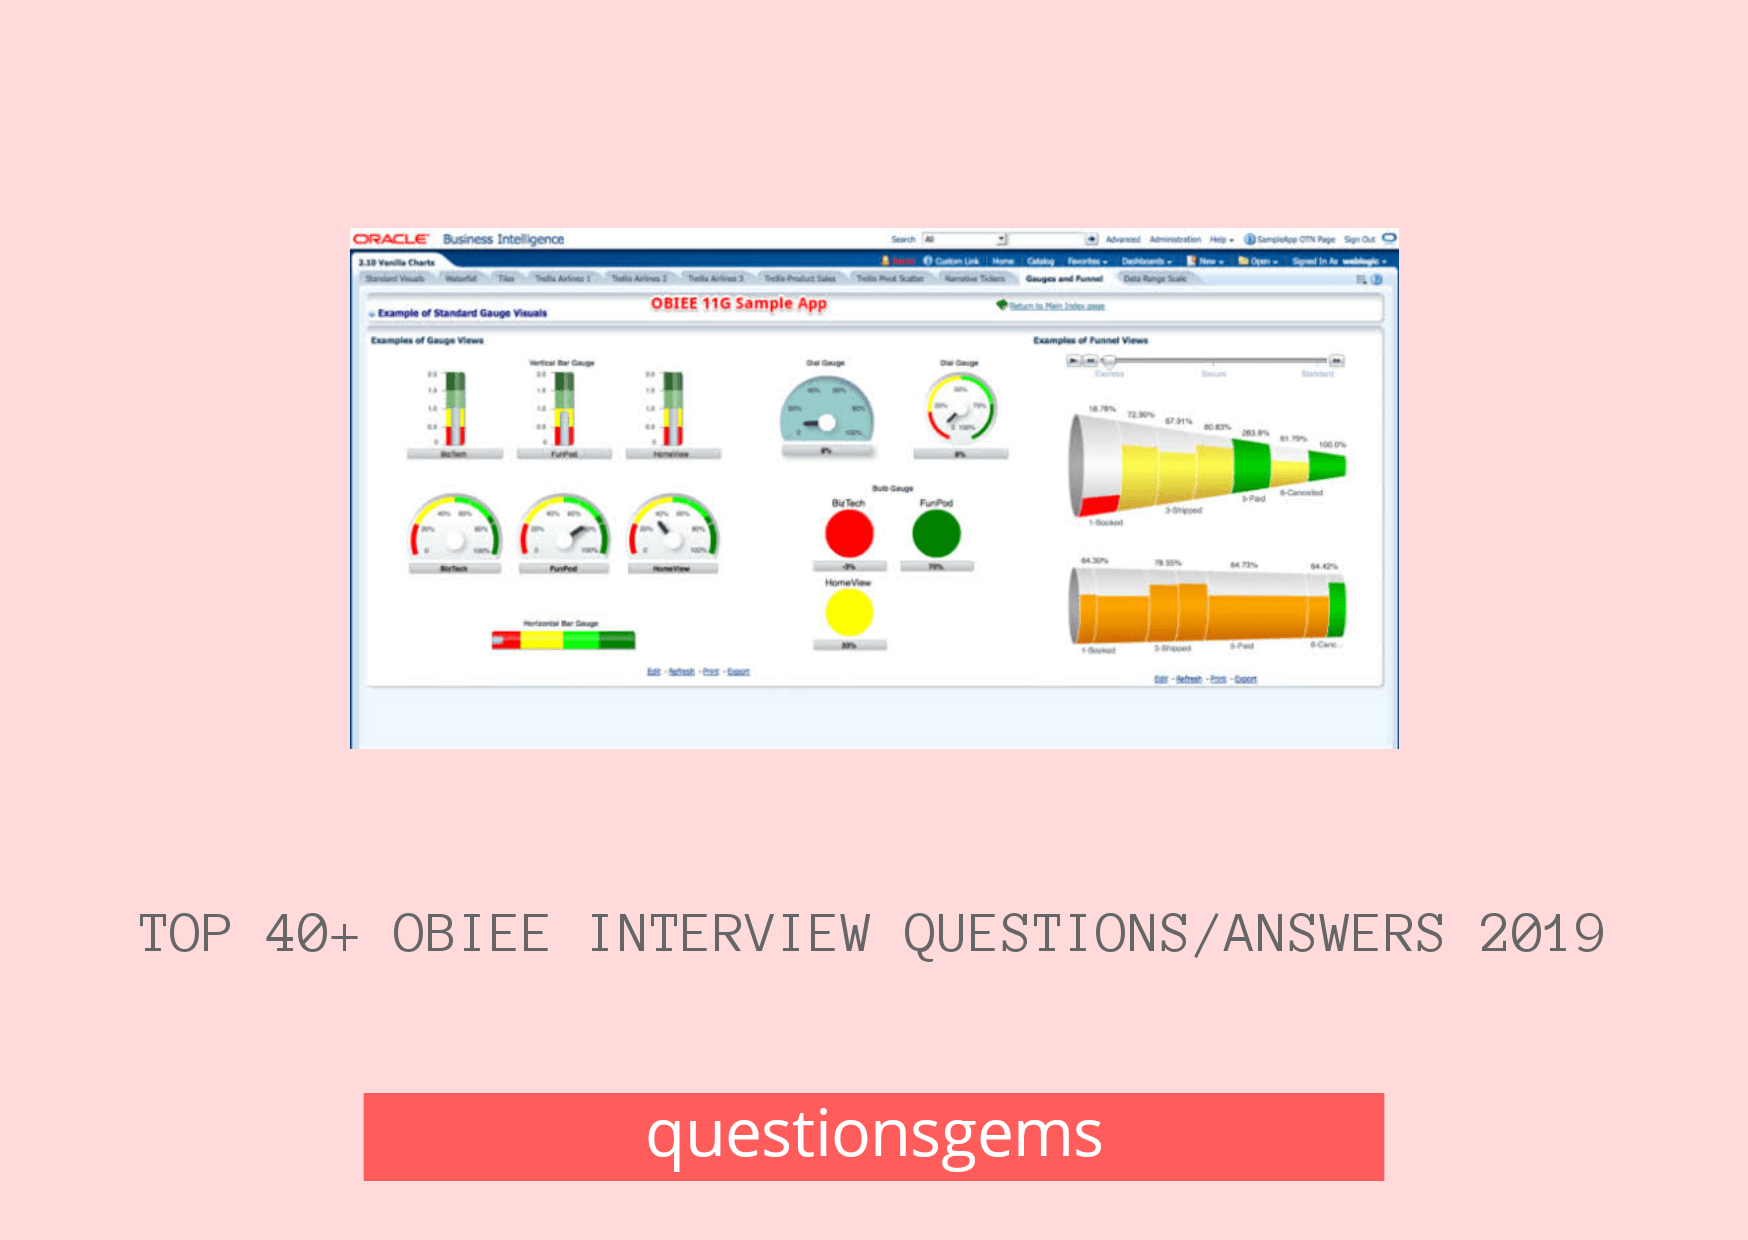 Top 40 OBIEE Interview Questions And Answers 2019 [Updated]